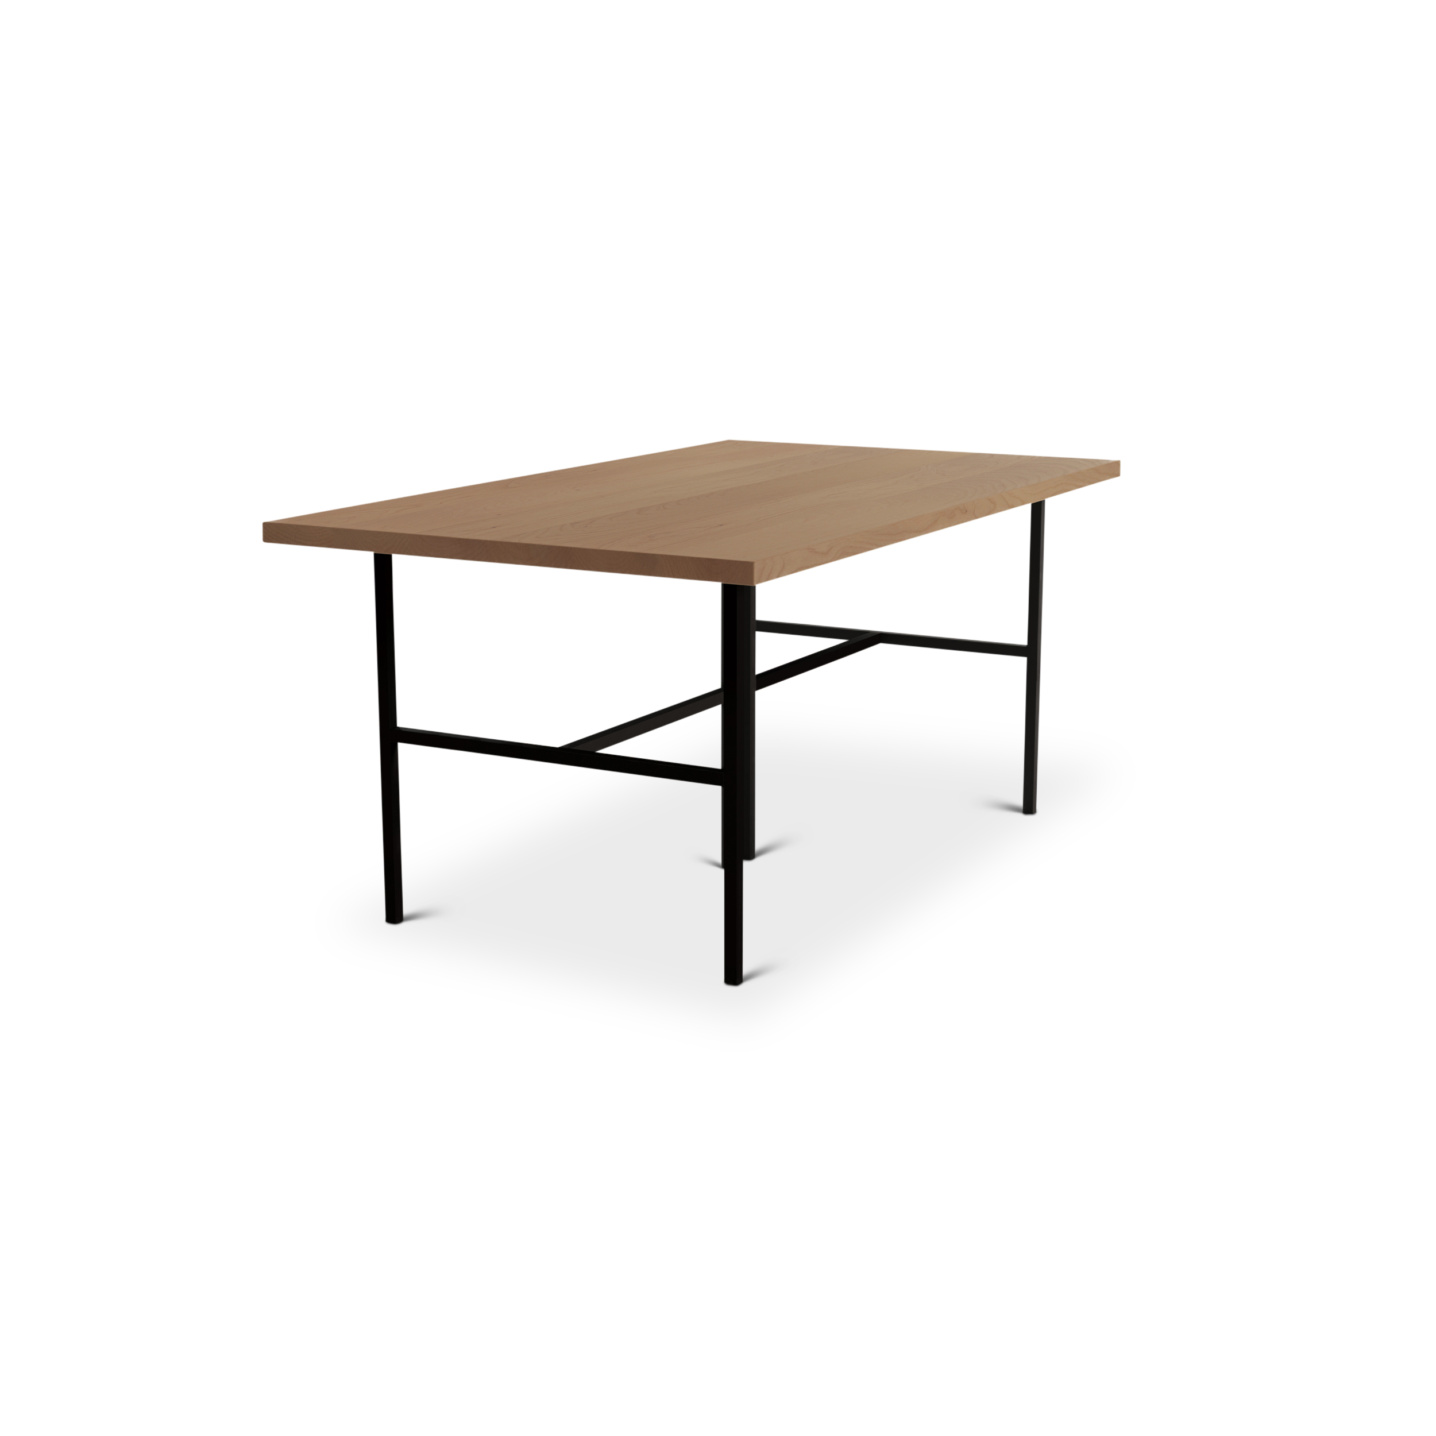 Solid cherry wood table with black metal legs